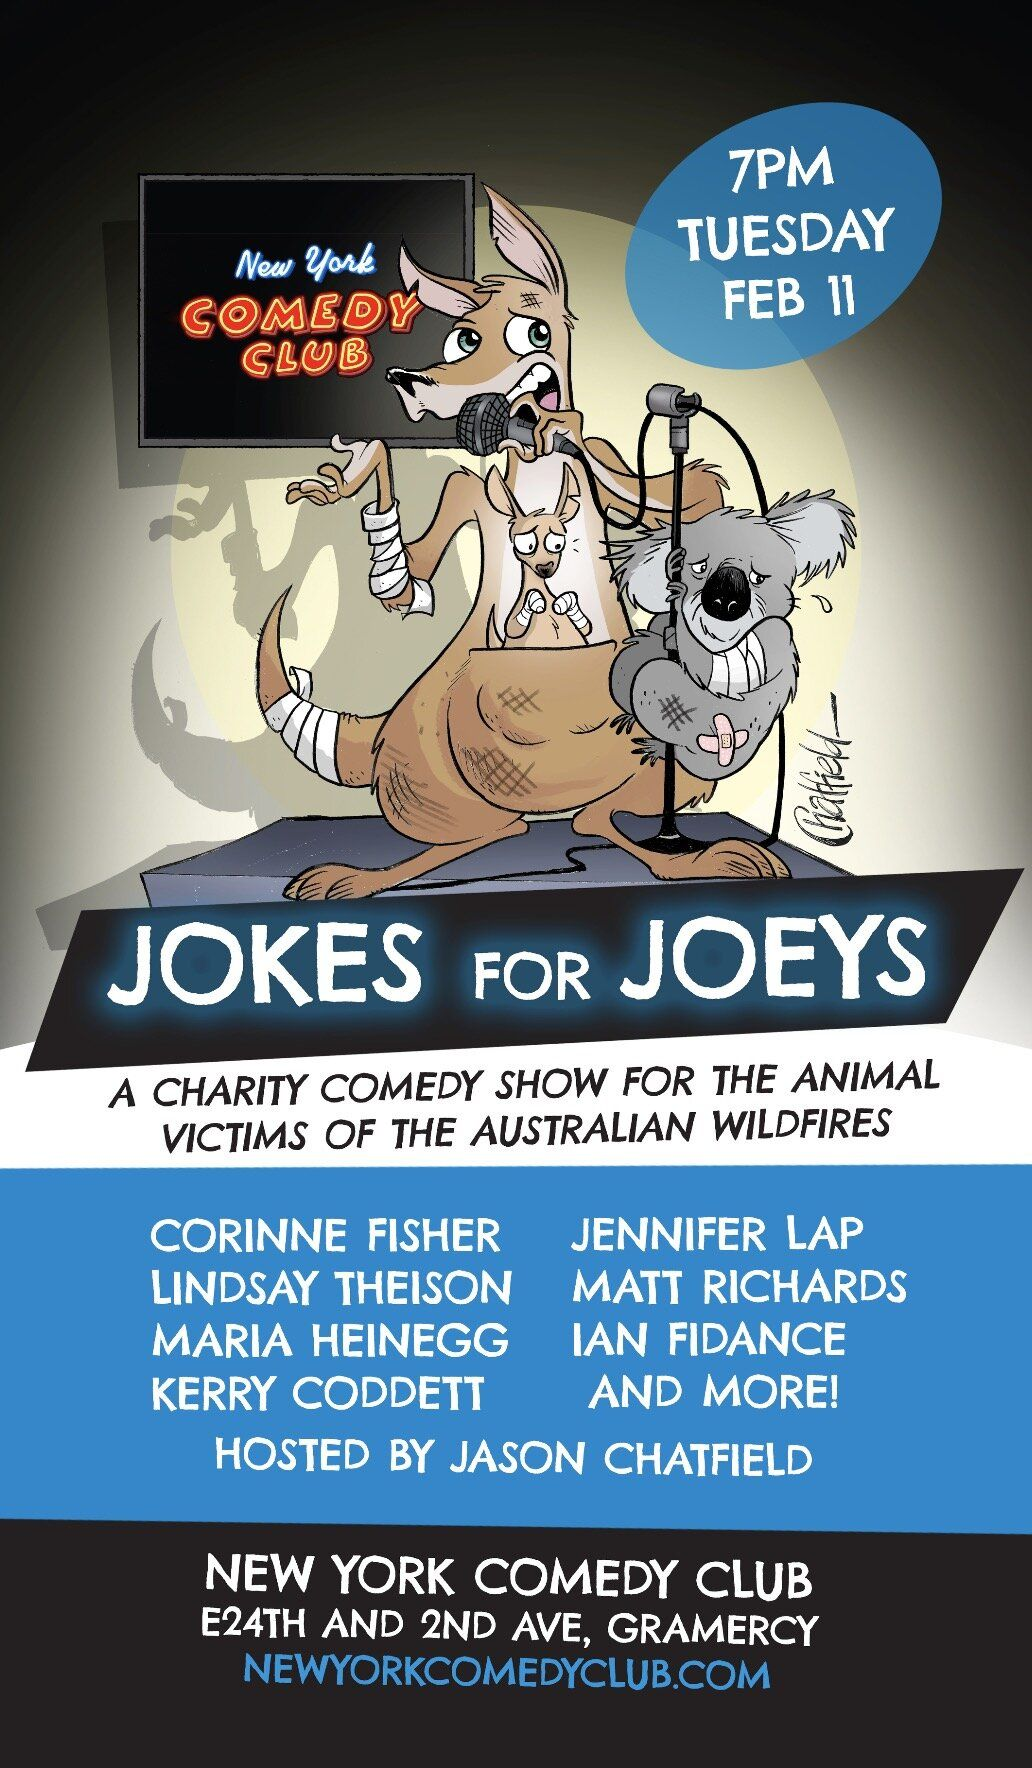 Jokes For Joeys Come Help Raise Money For The Animals Injured And Displaced By The Australian Bushfires How To Raise Money Jokes Comedy Club